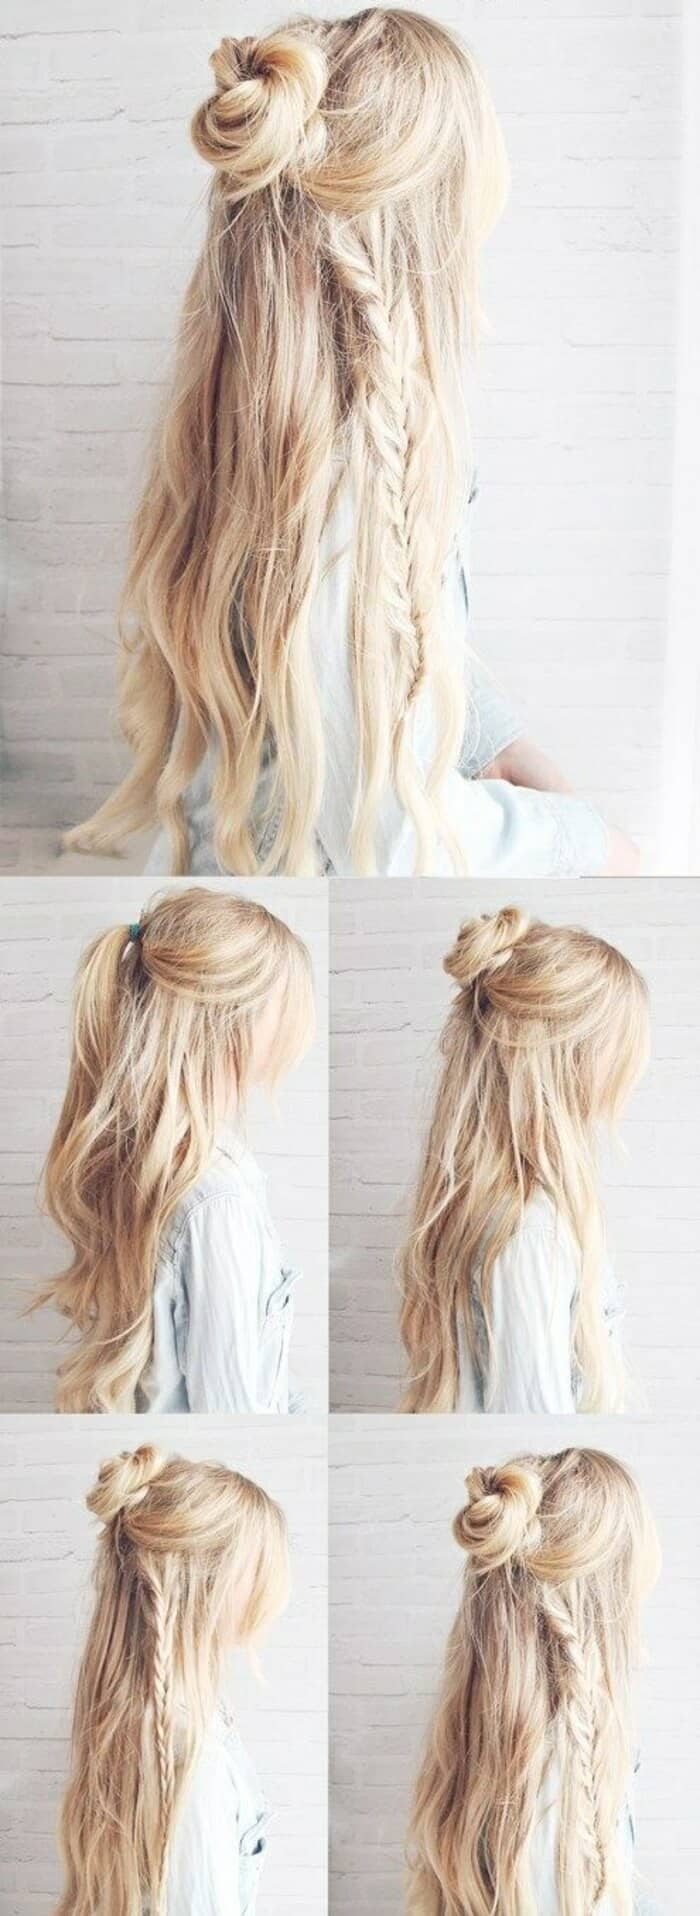 Easy Hairstyle With Half-Up Bun and Braid